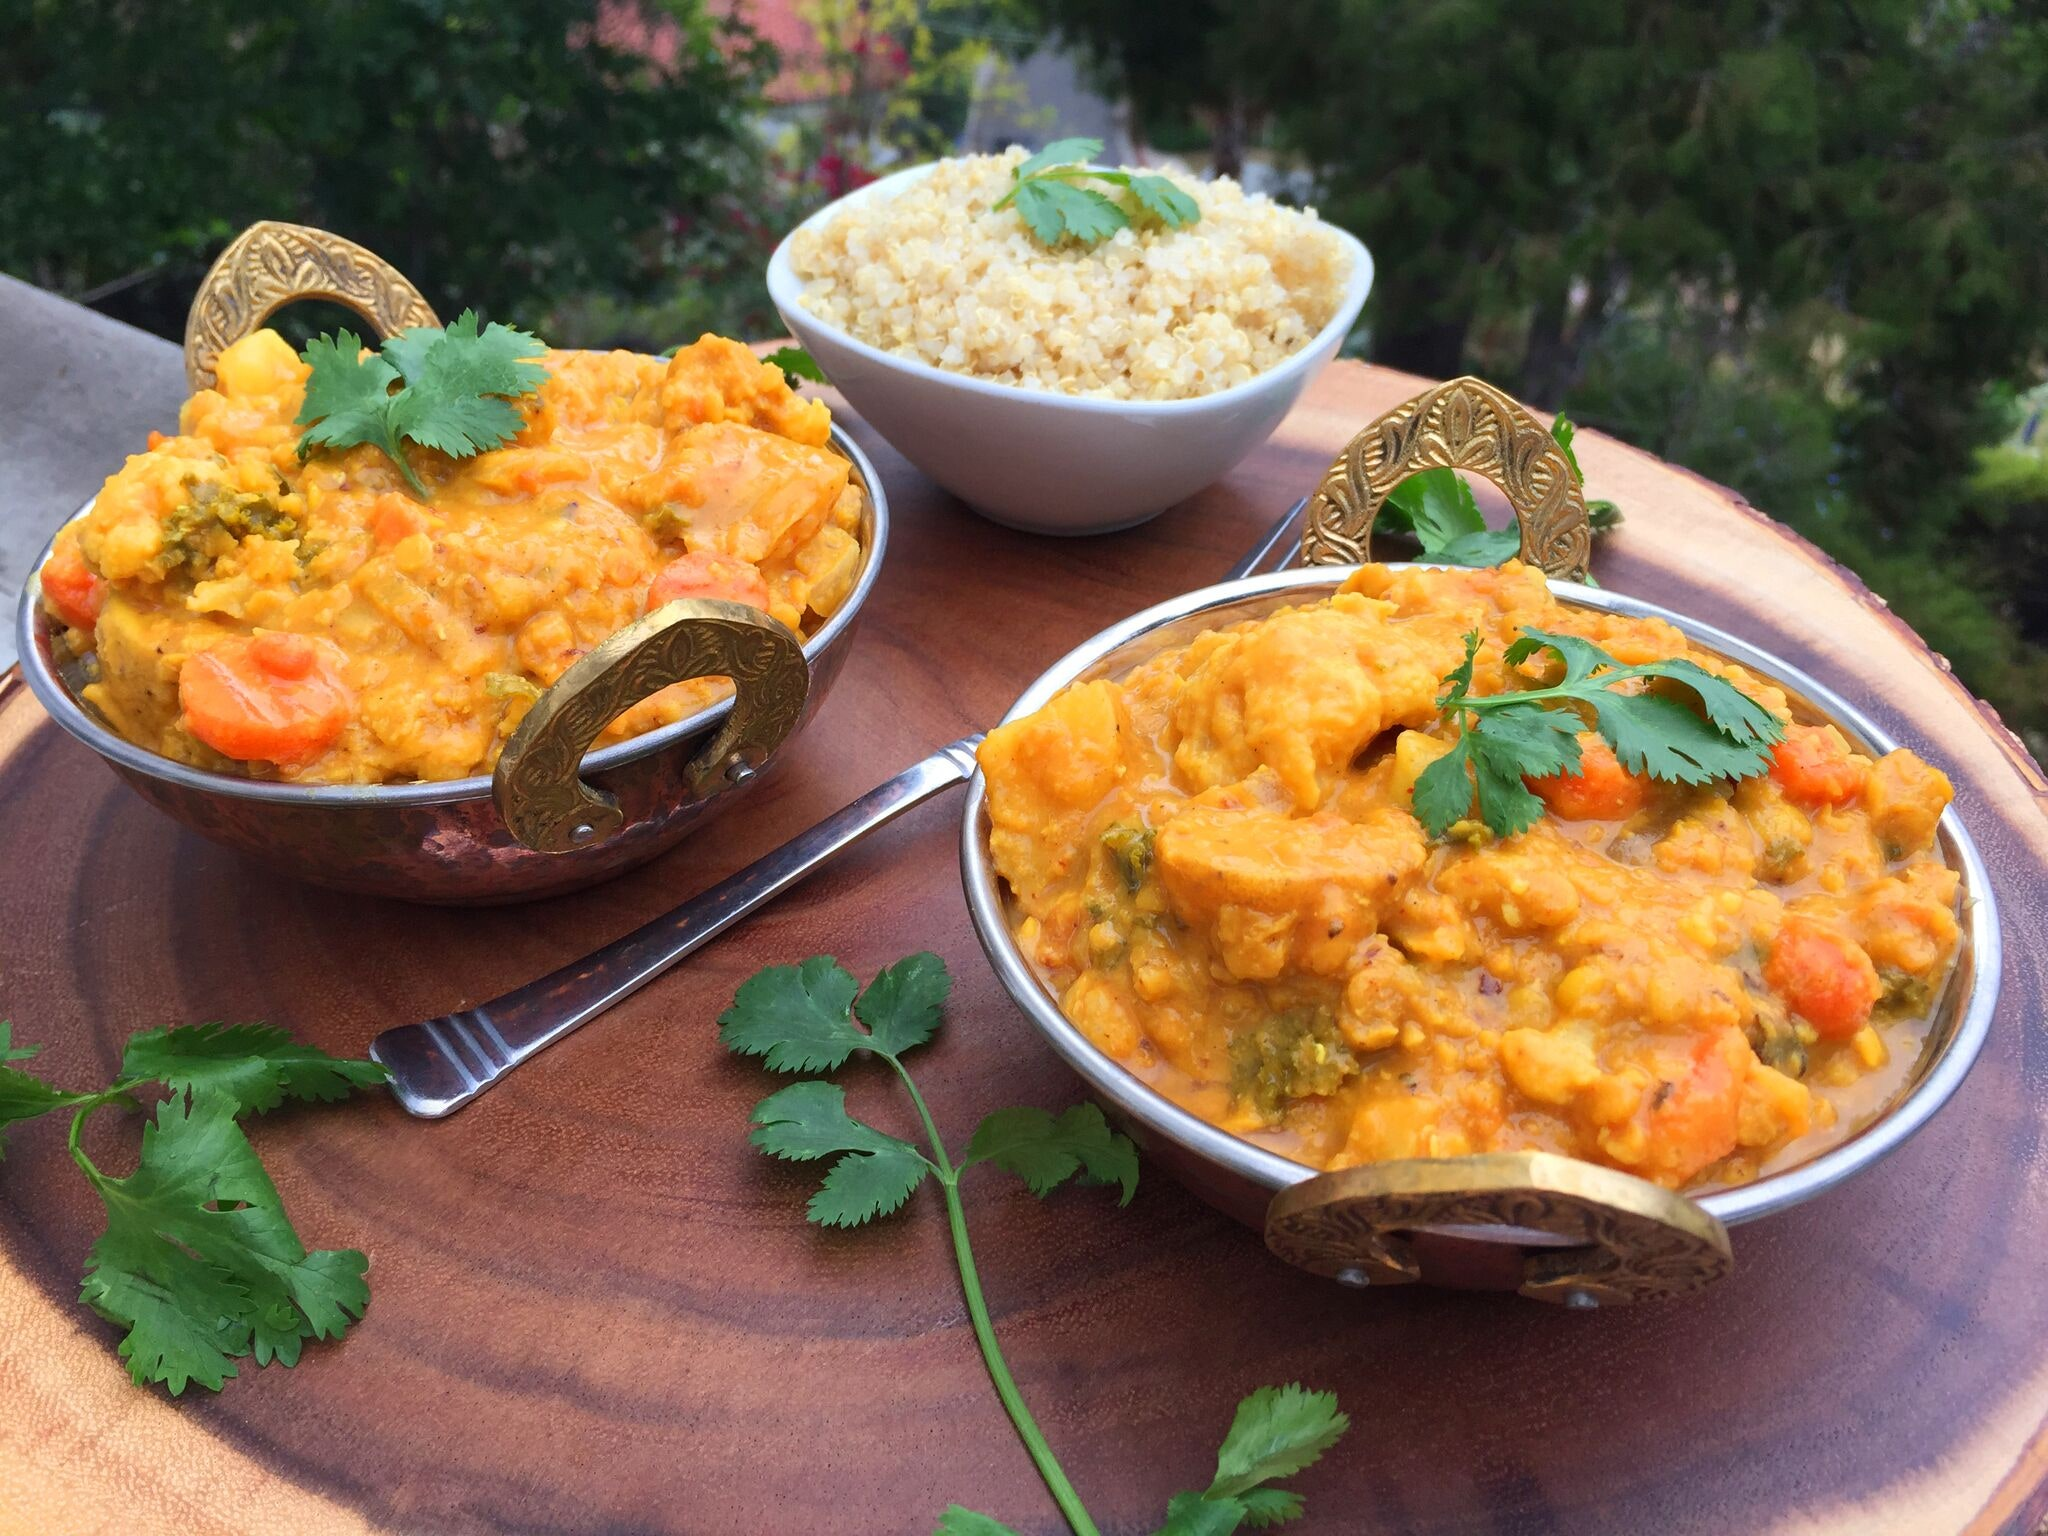 Spicy Vegan Orange-Coconut Vegetable Curry With Red Lentils